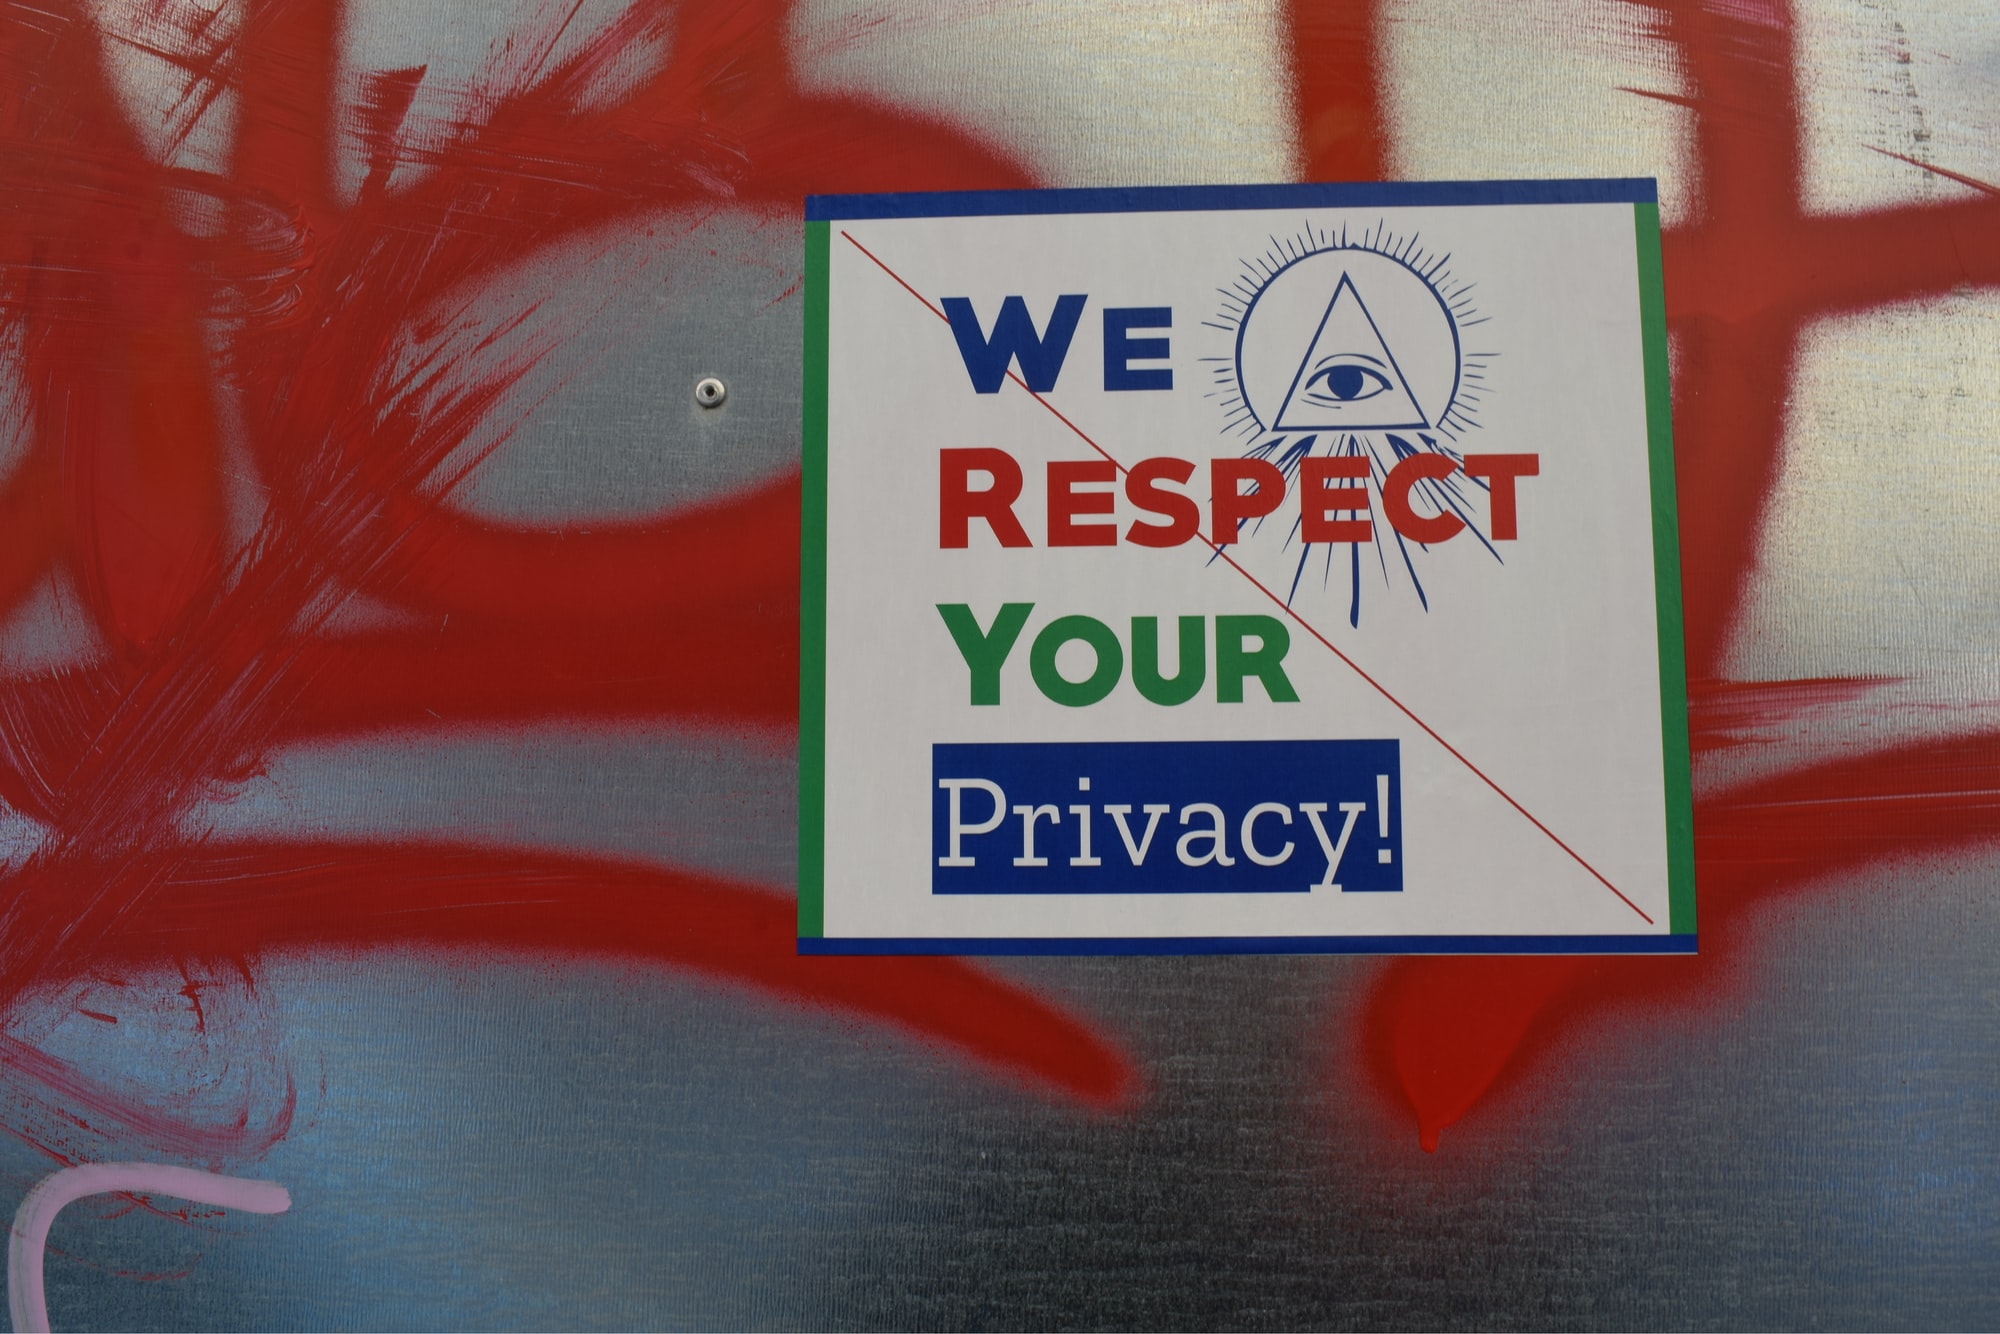 Hate cookie banners? Want more privacy? Me too!